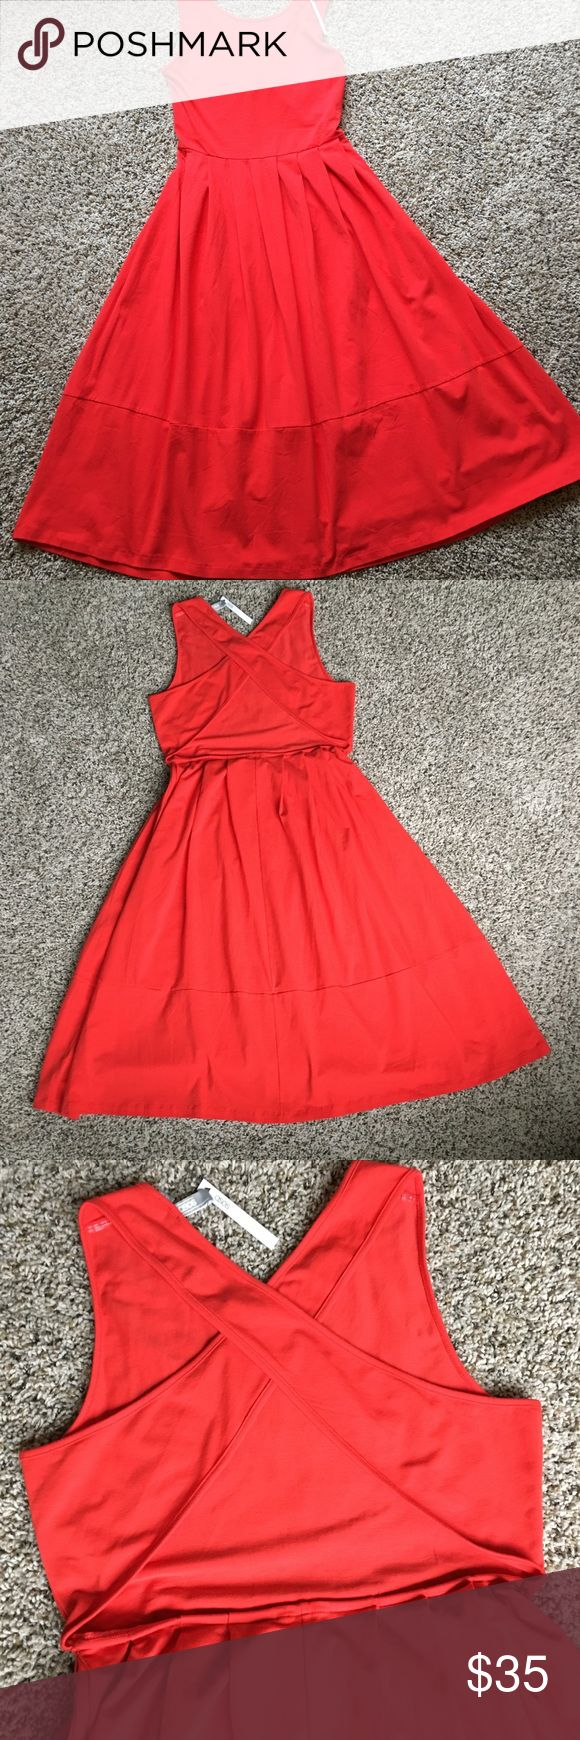 Beautiful Red Dress with open back Size 14 Midi This beautiful cotton red dress is a summertime flirty number that is sure to land you on the best dressed headline! The cross cross back is an added feature and a nice surprise when walking away. Size 14 Midi Length Asos Dresses Midi